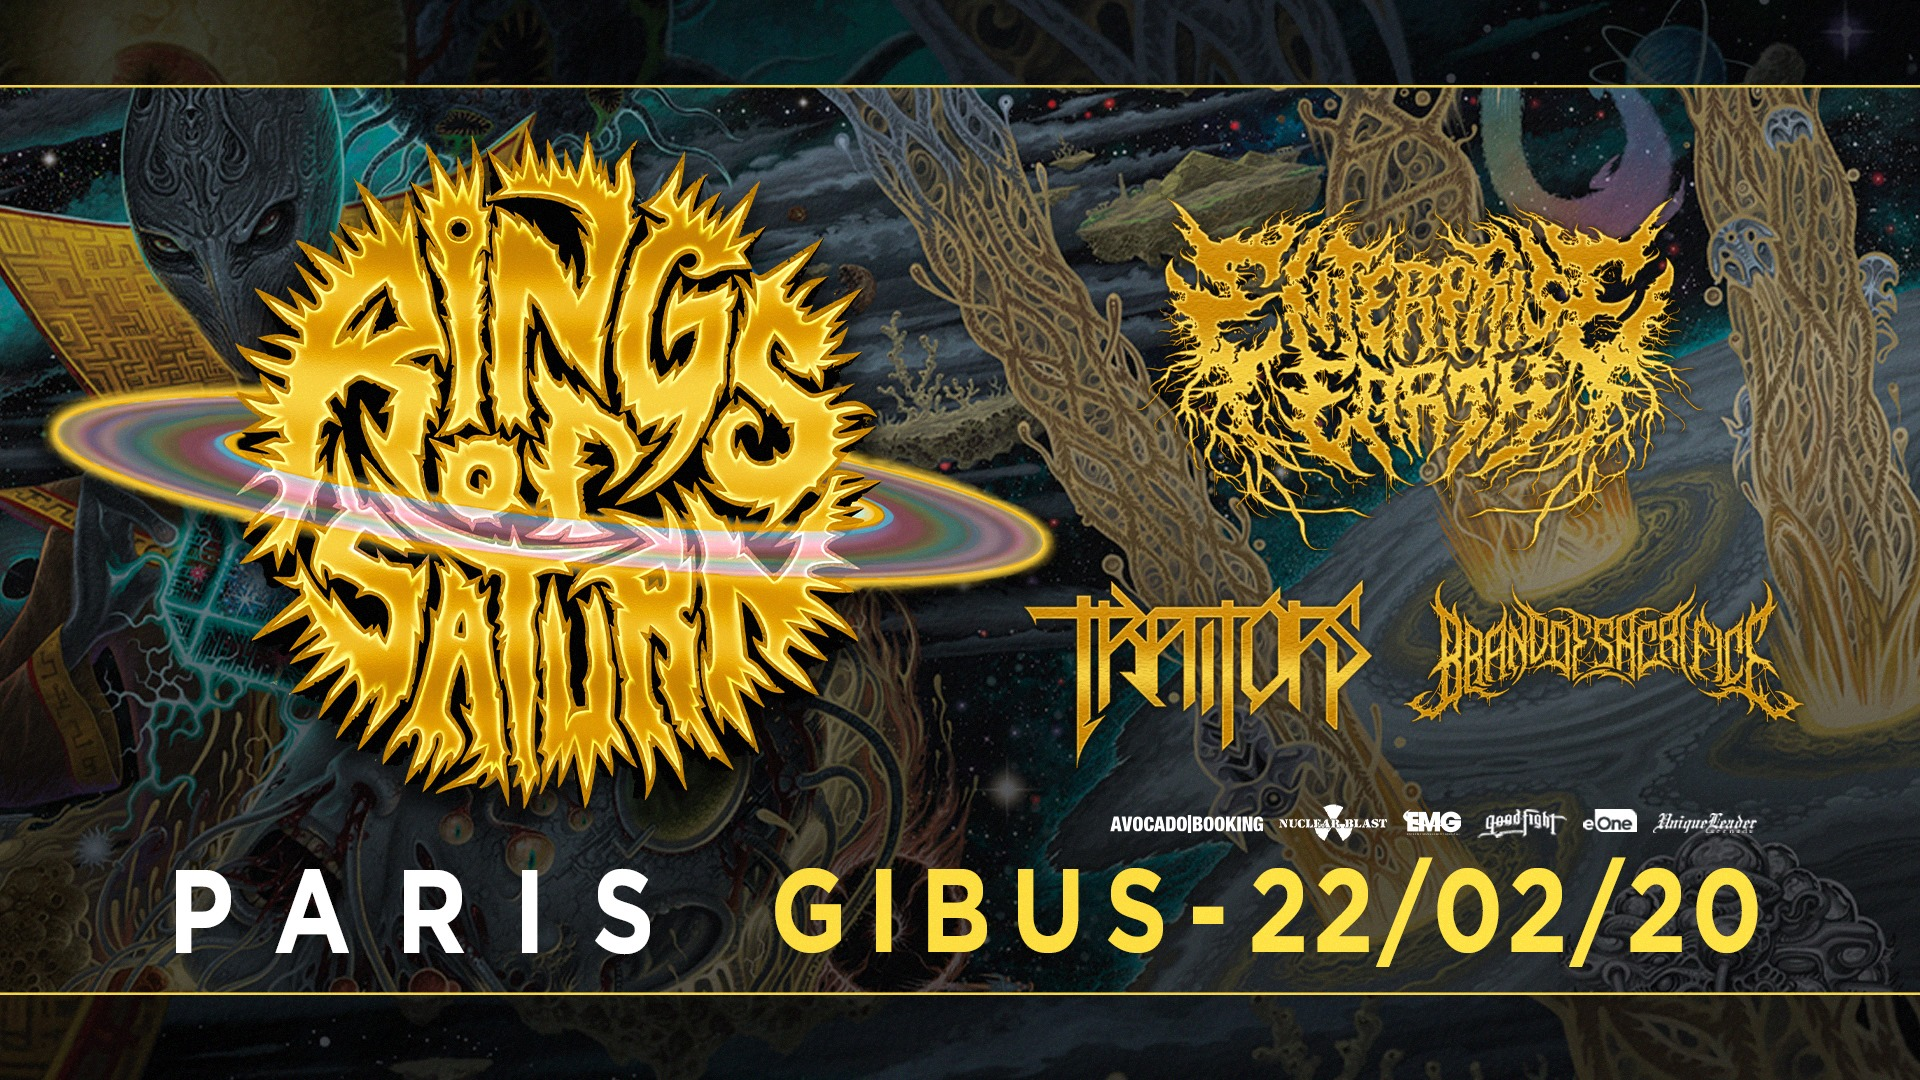 22.02.2020 –  Rings of Saturn, Enterprise Earth, Traitors, BxOxS